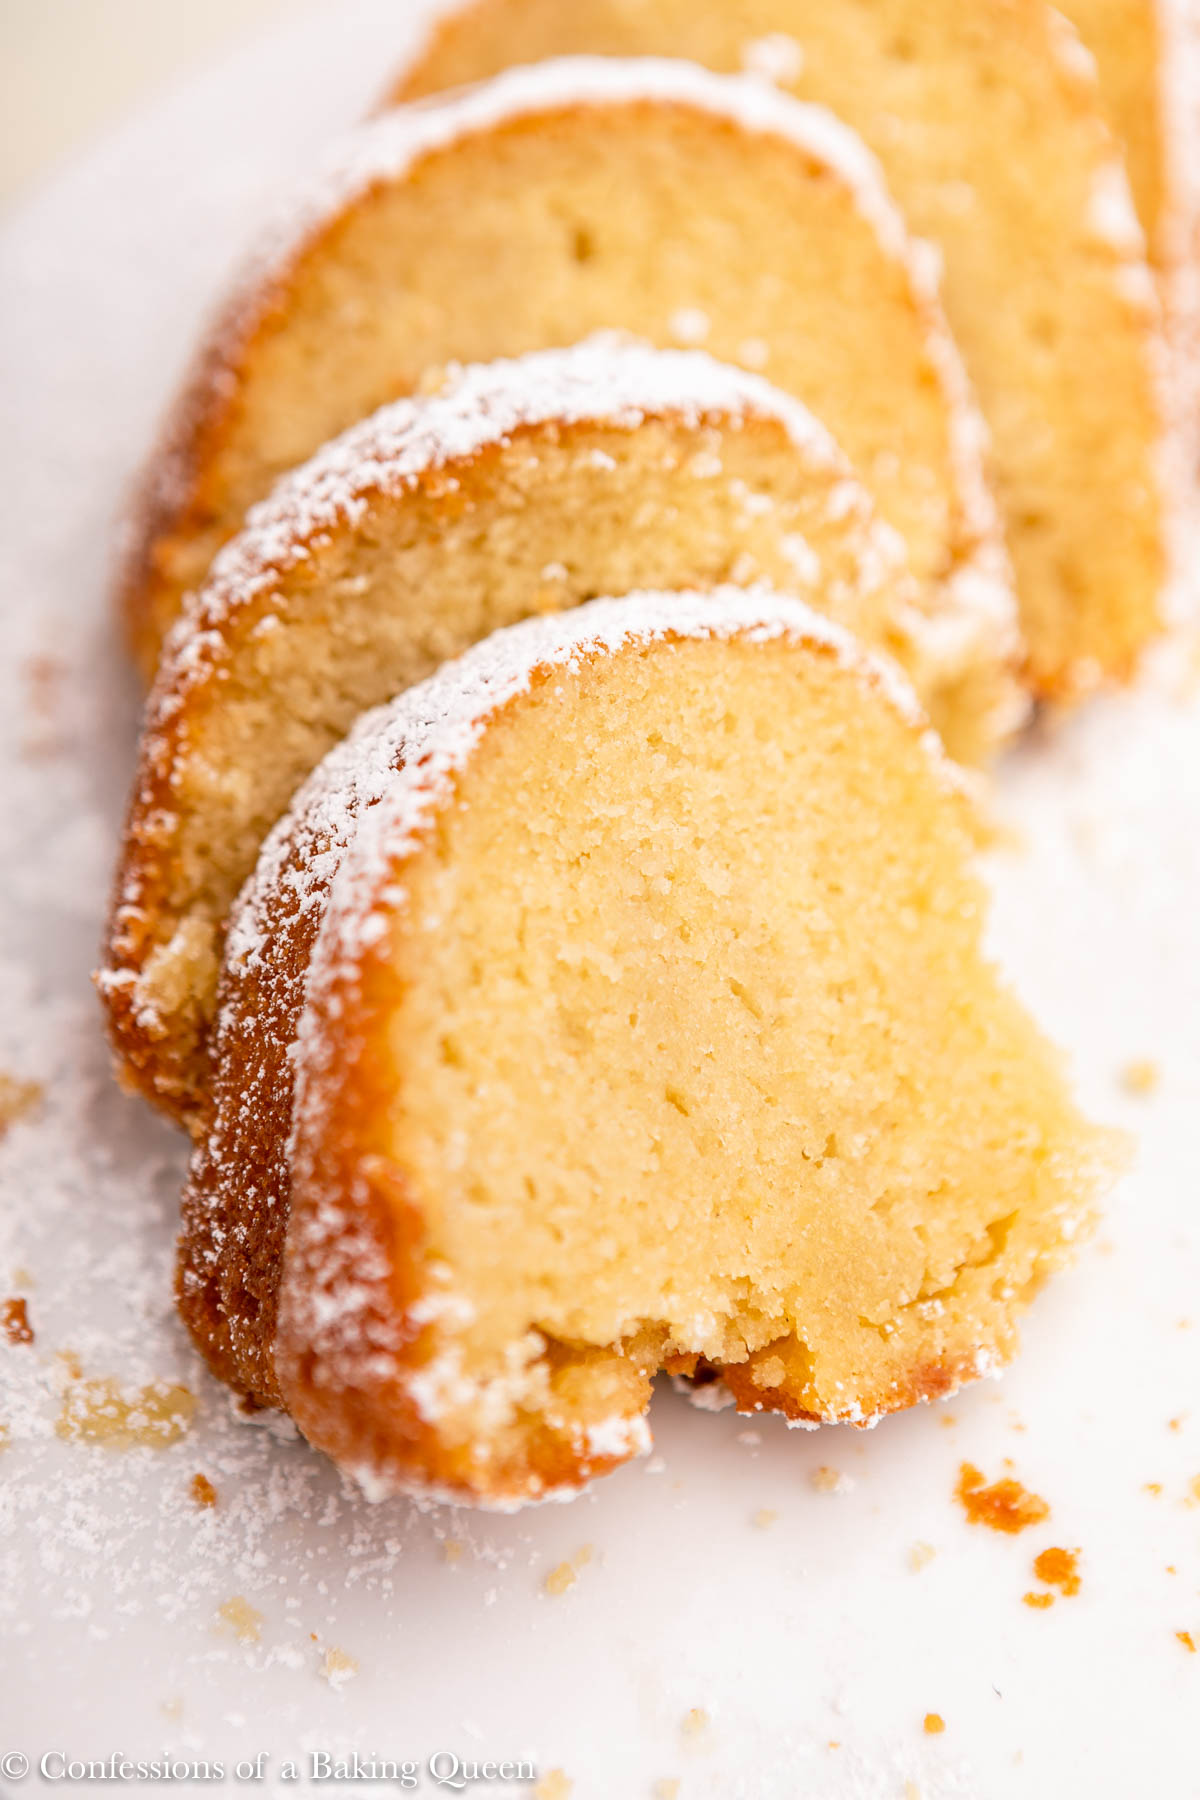 slices of kentucky butter cake on a white plate